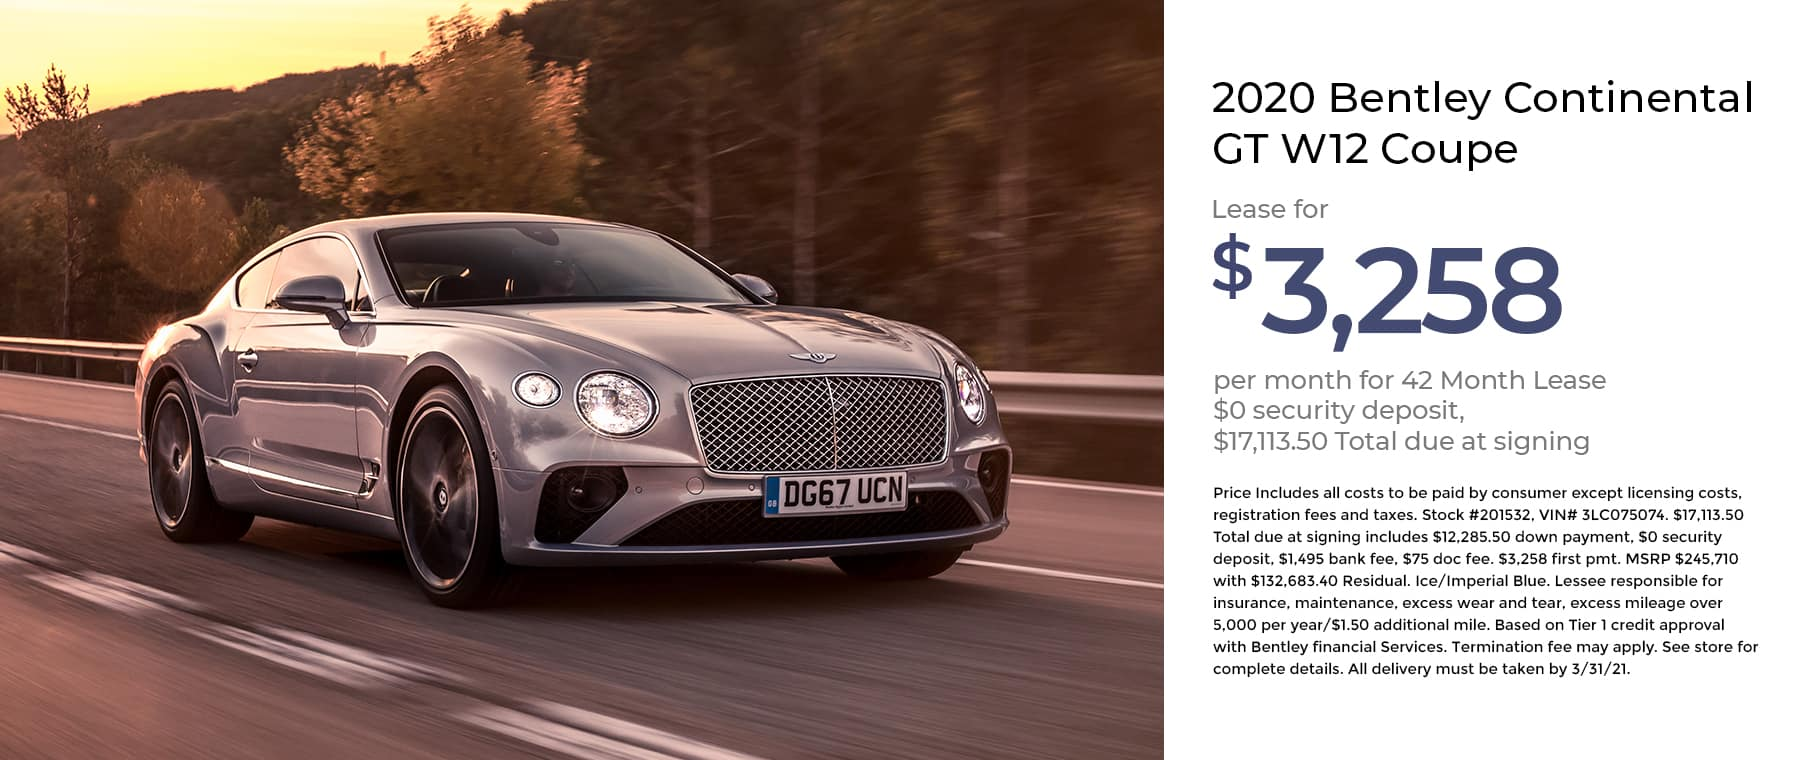 Bentley Continental GT W12 Coupe 1800×760 January 2021 (1)